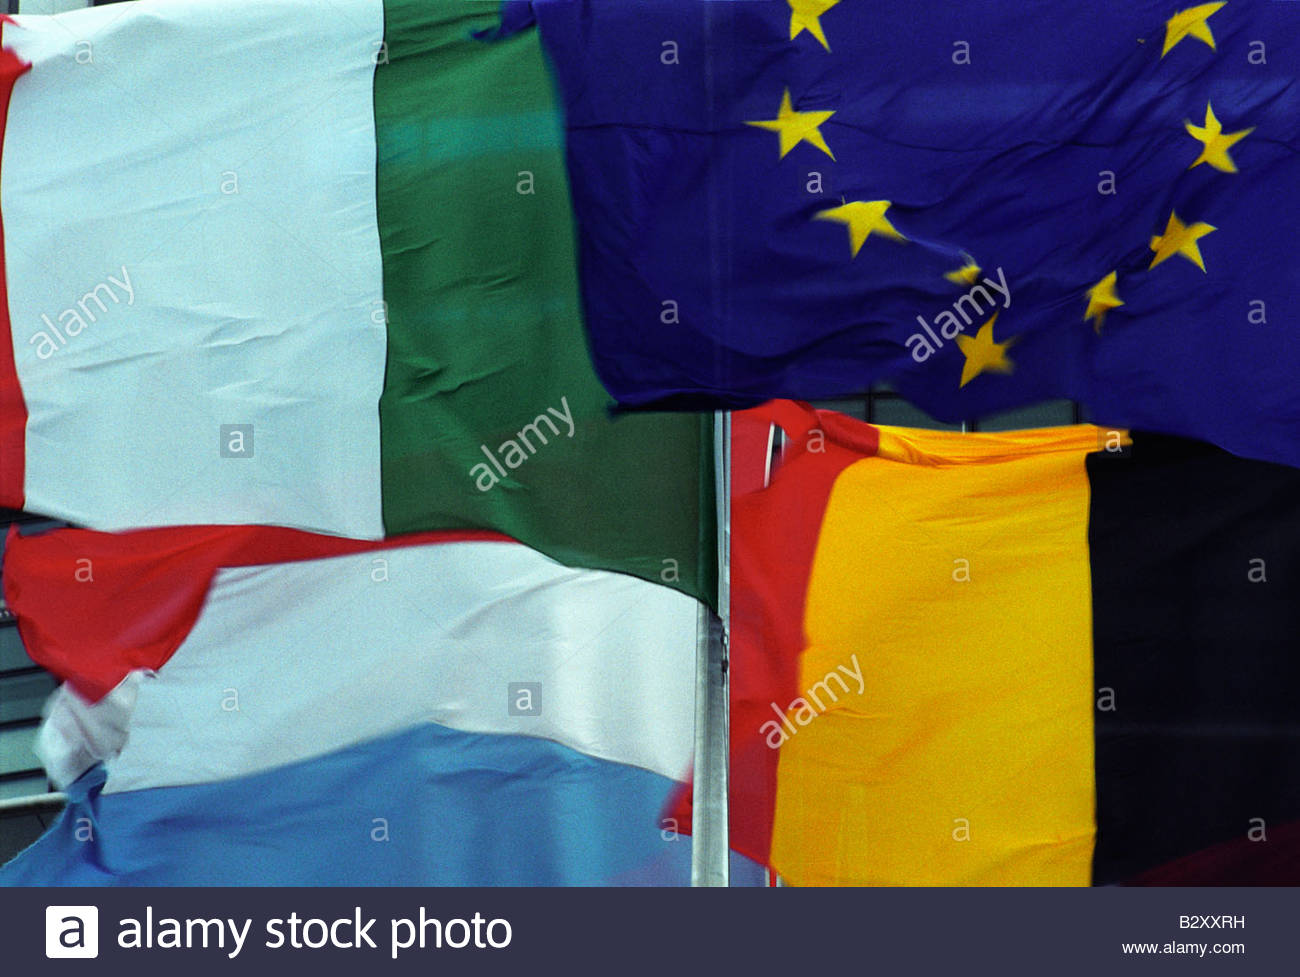 flags - Stock Image